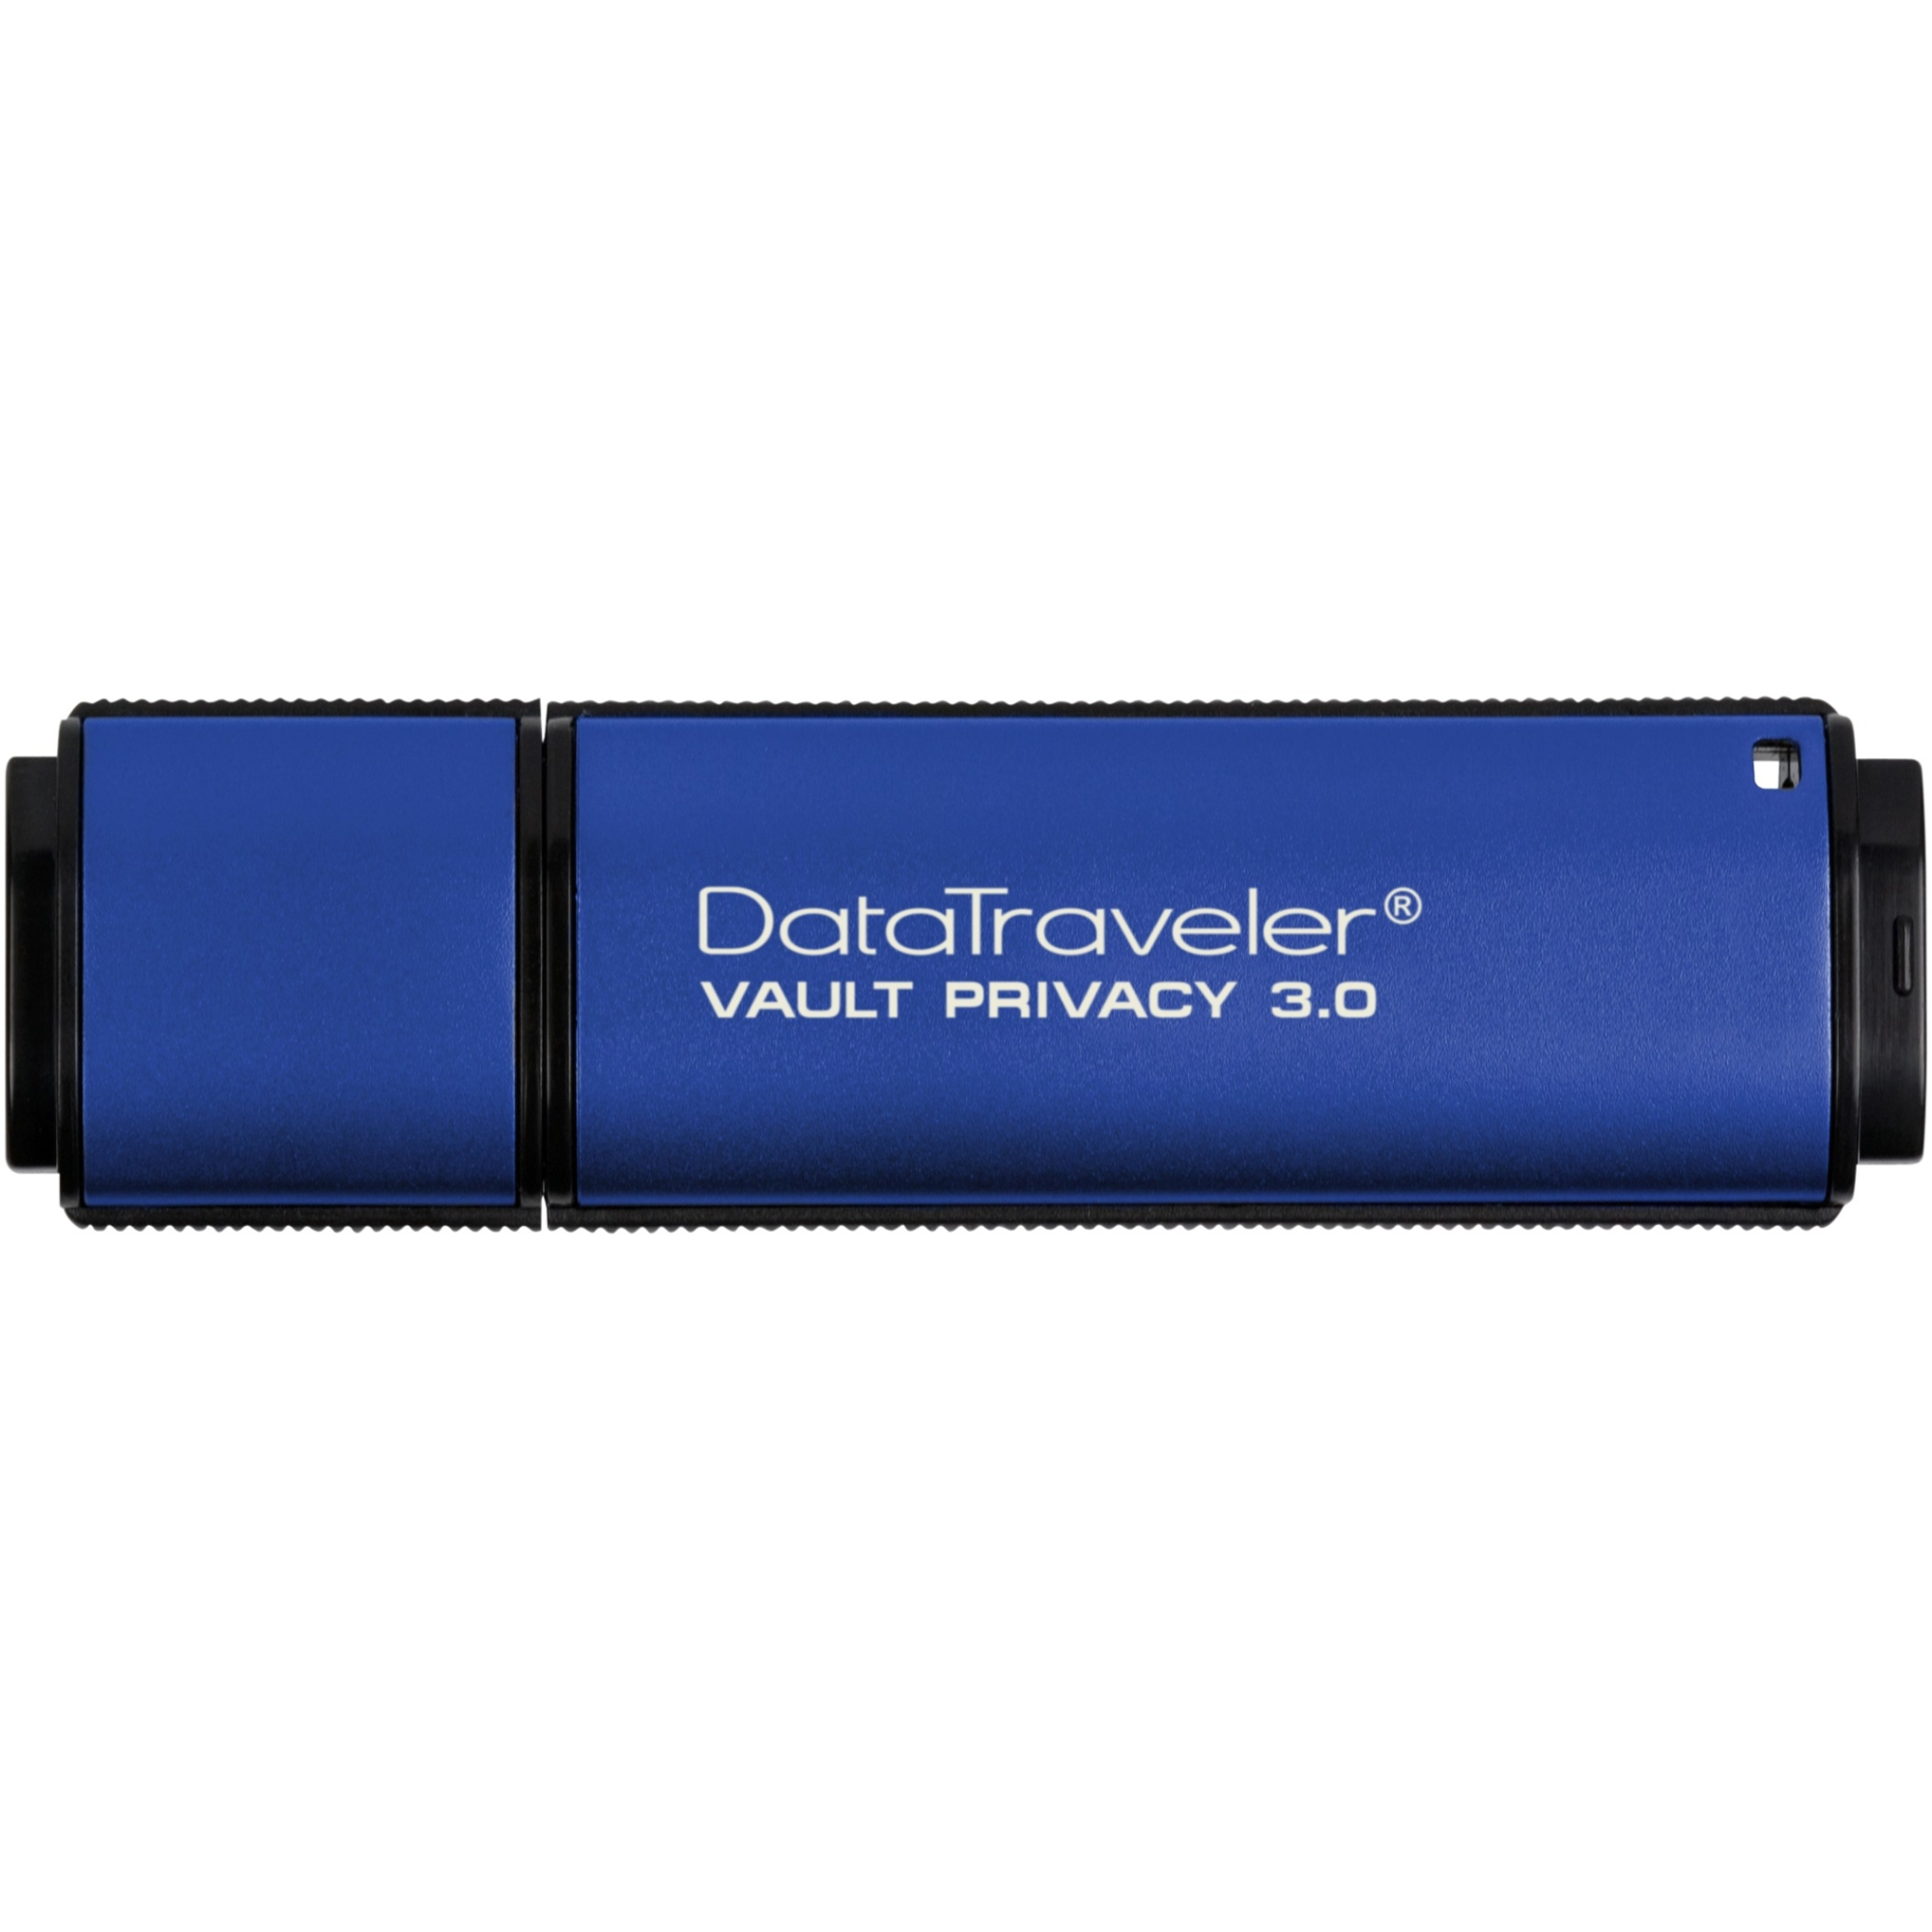 Kingston 64GB USB 3.0 DataTraveler Vault Privacy 3.0 Encrypted USB Flash Drive by Kingston